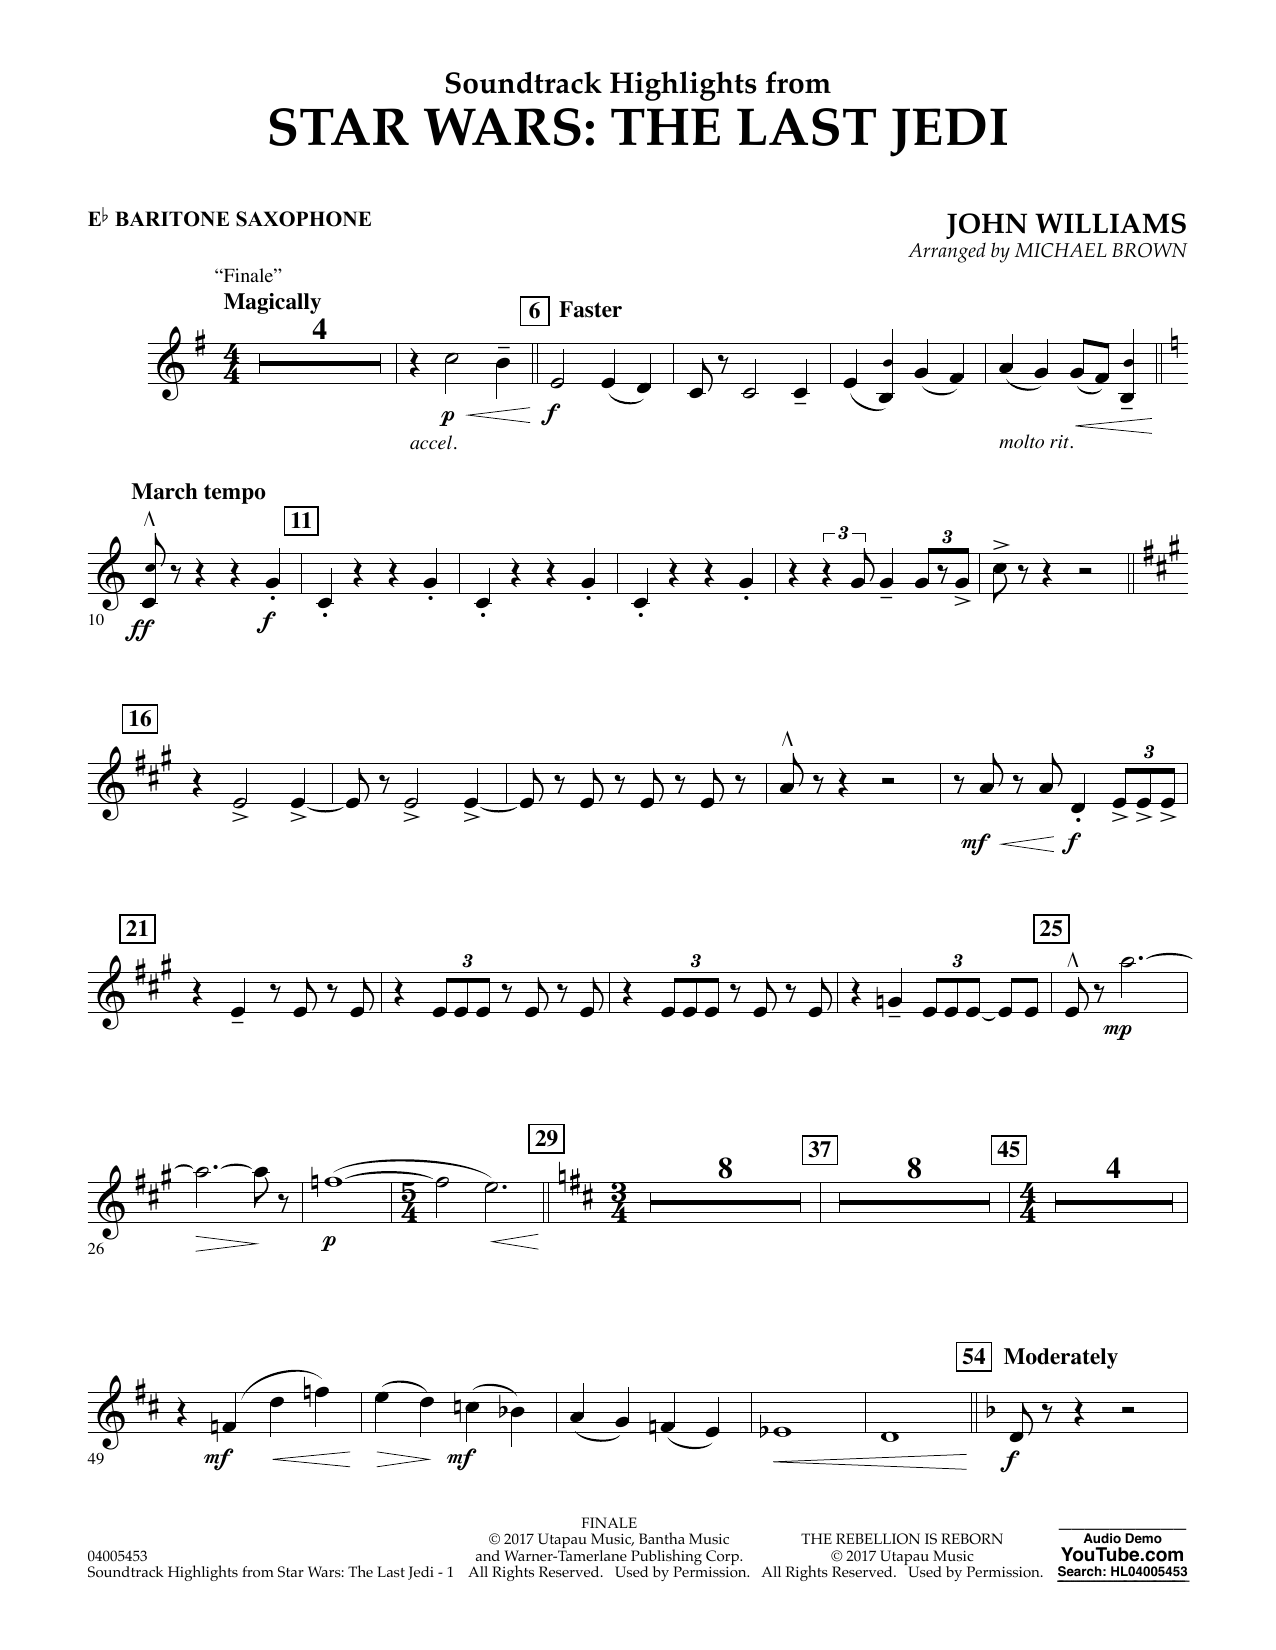 Michael Brown Soundtrack Highlights from Star Wars: The Last Jedi - Eb Baritone Saxophone sheet music notes and chords. Download Printable PDF.